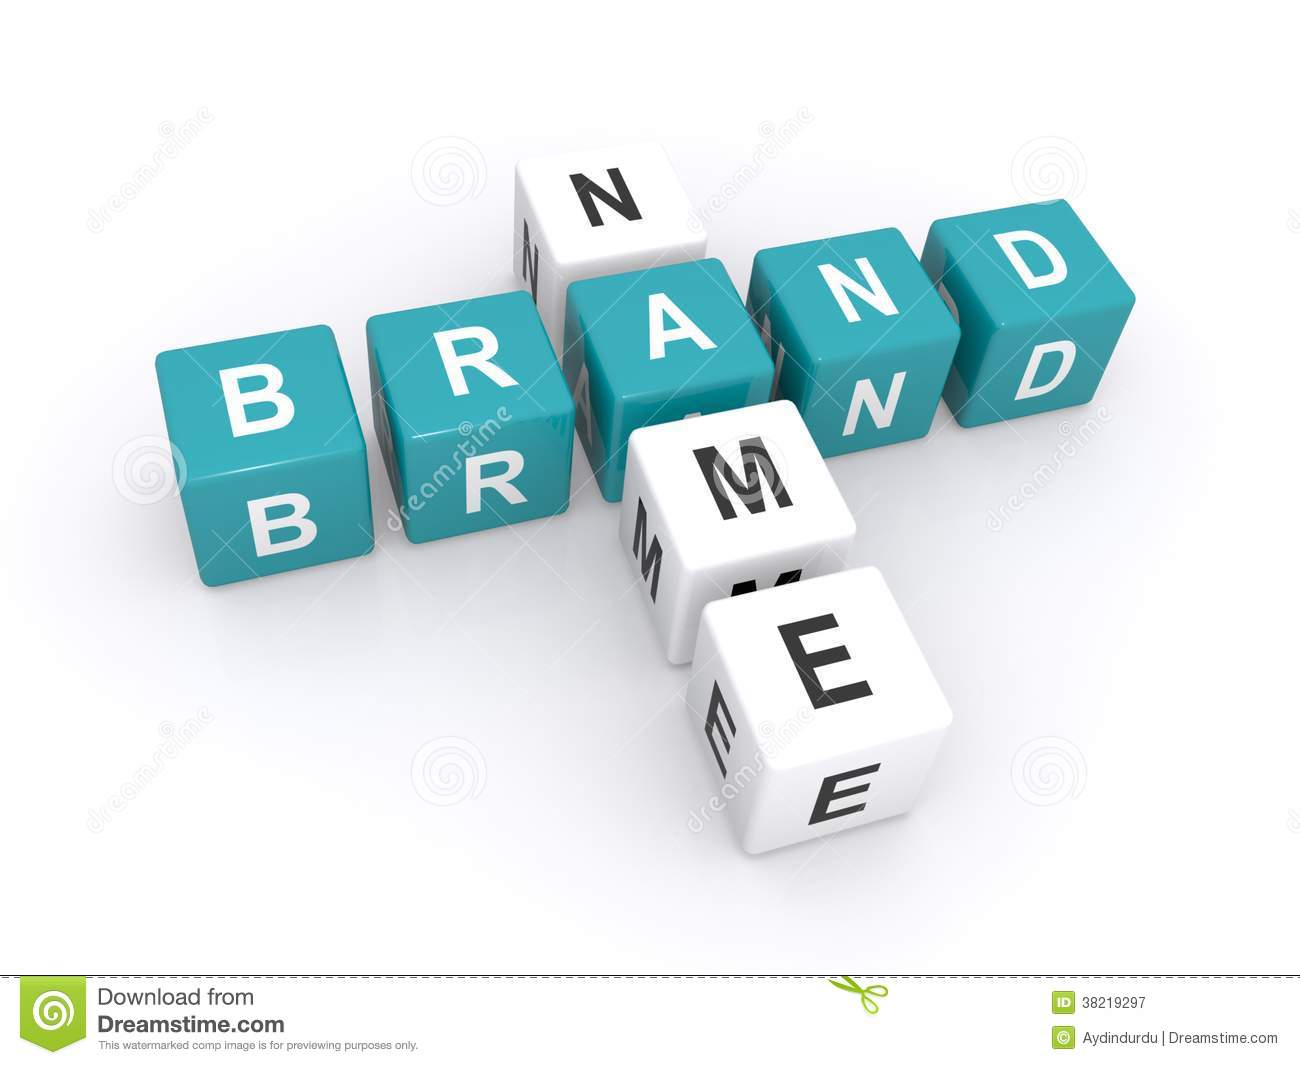 Brand name clipart.